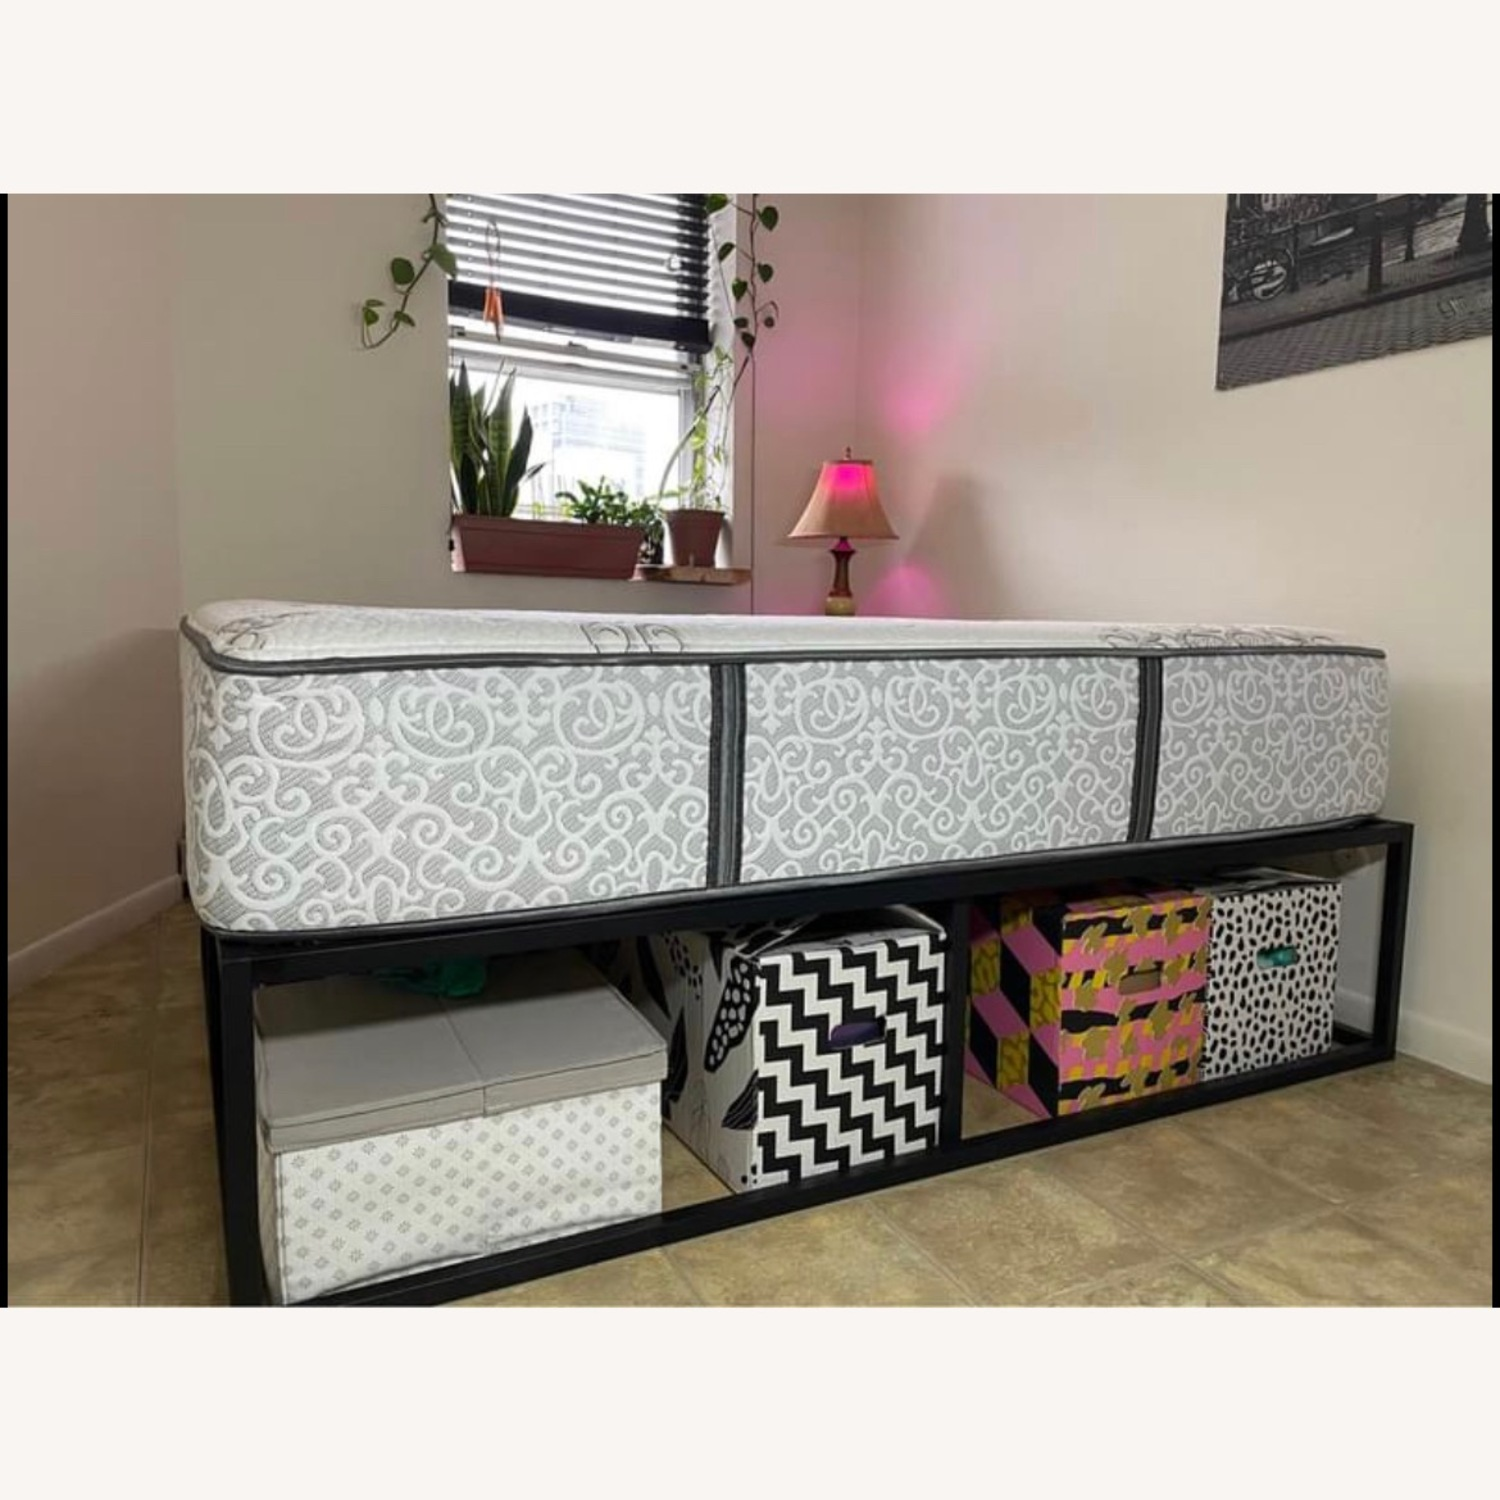 Queen Size Bed Frame - image-1